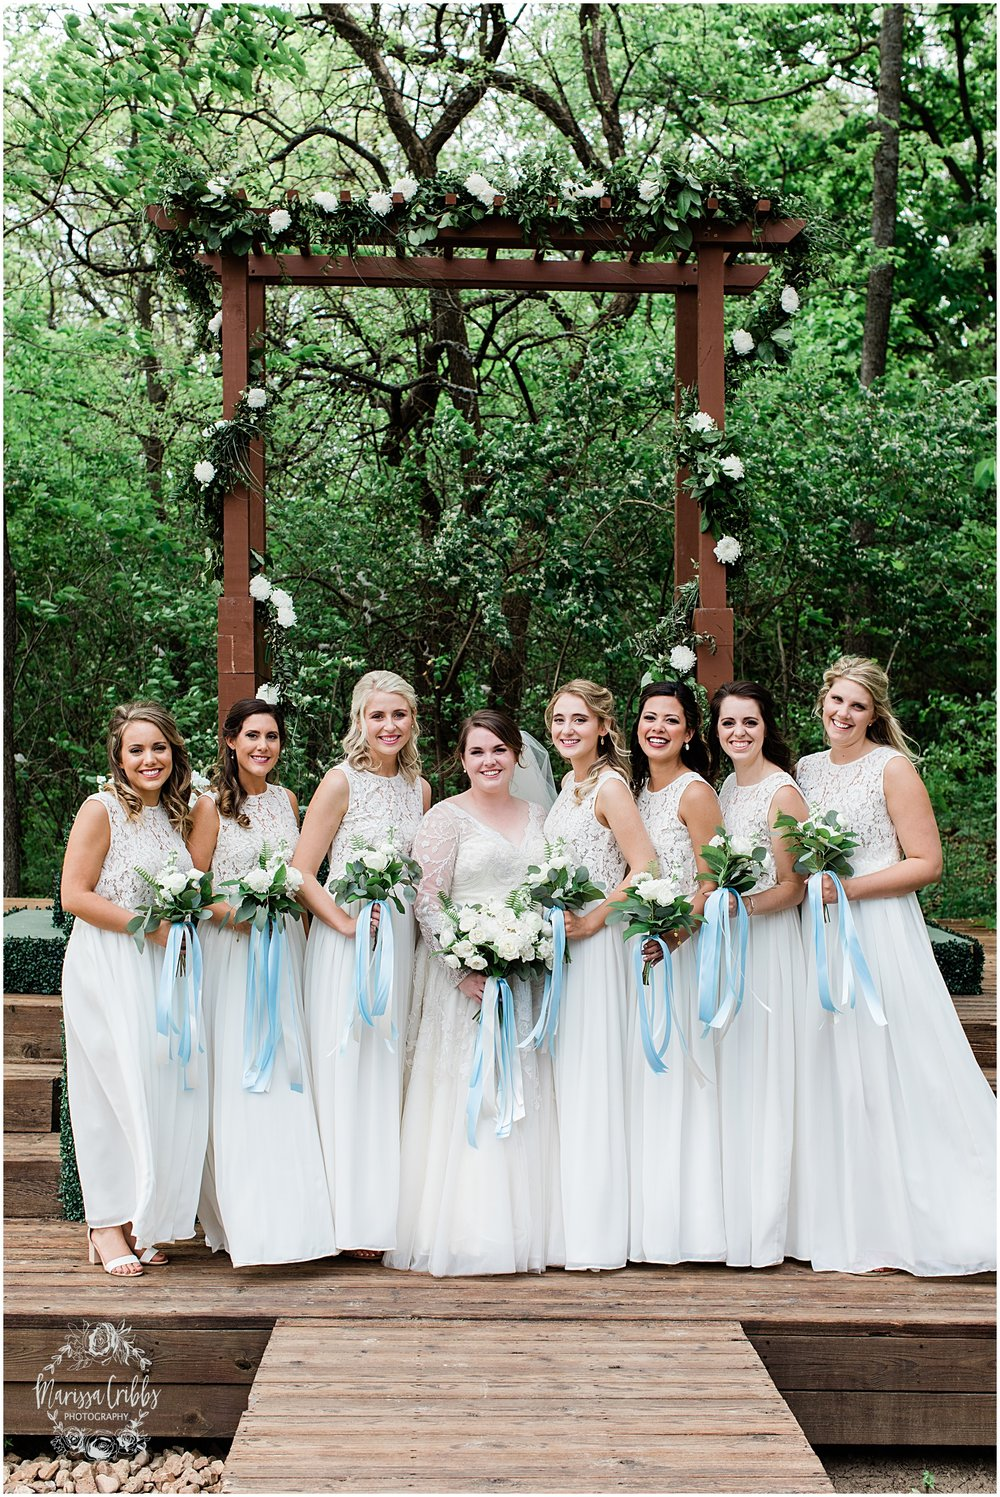 GORBY WEDDING | MARISSA CRIBBS PHOTOGRAPHY_5026.jpg